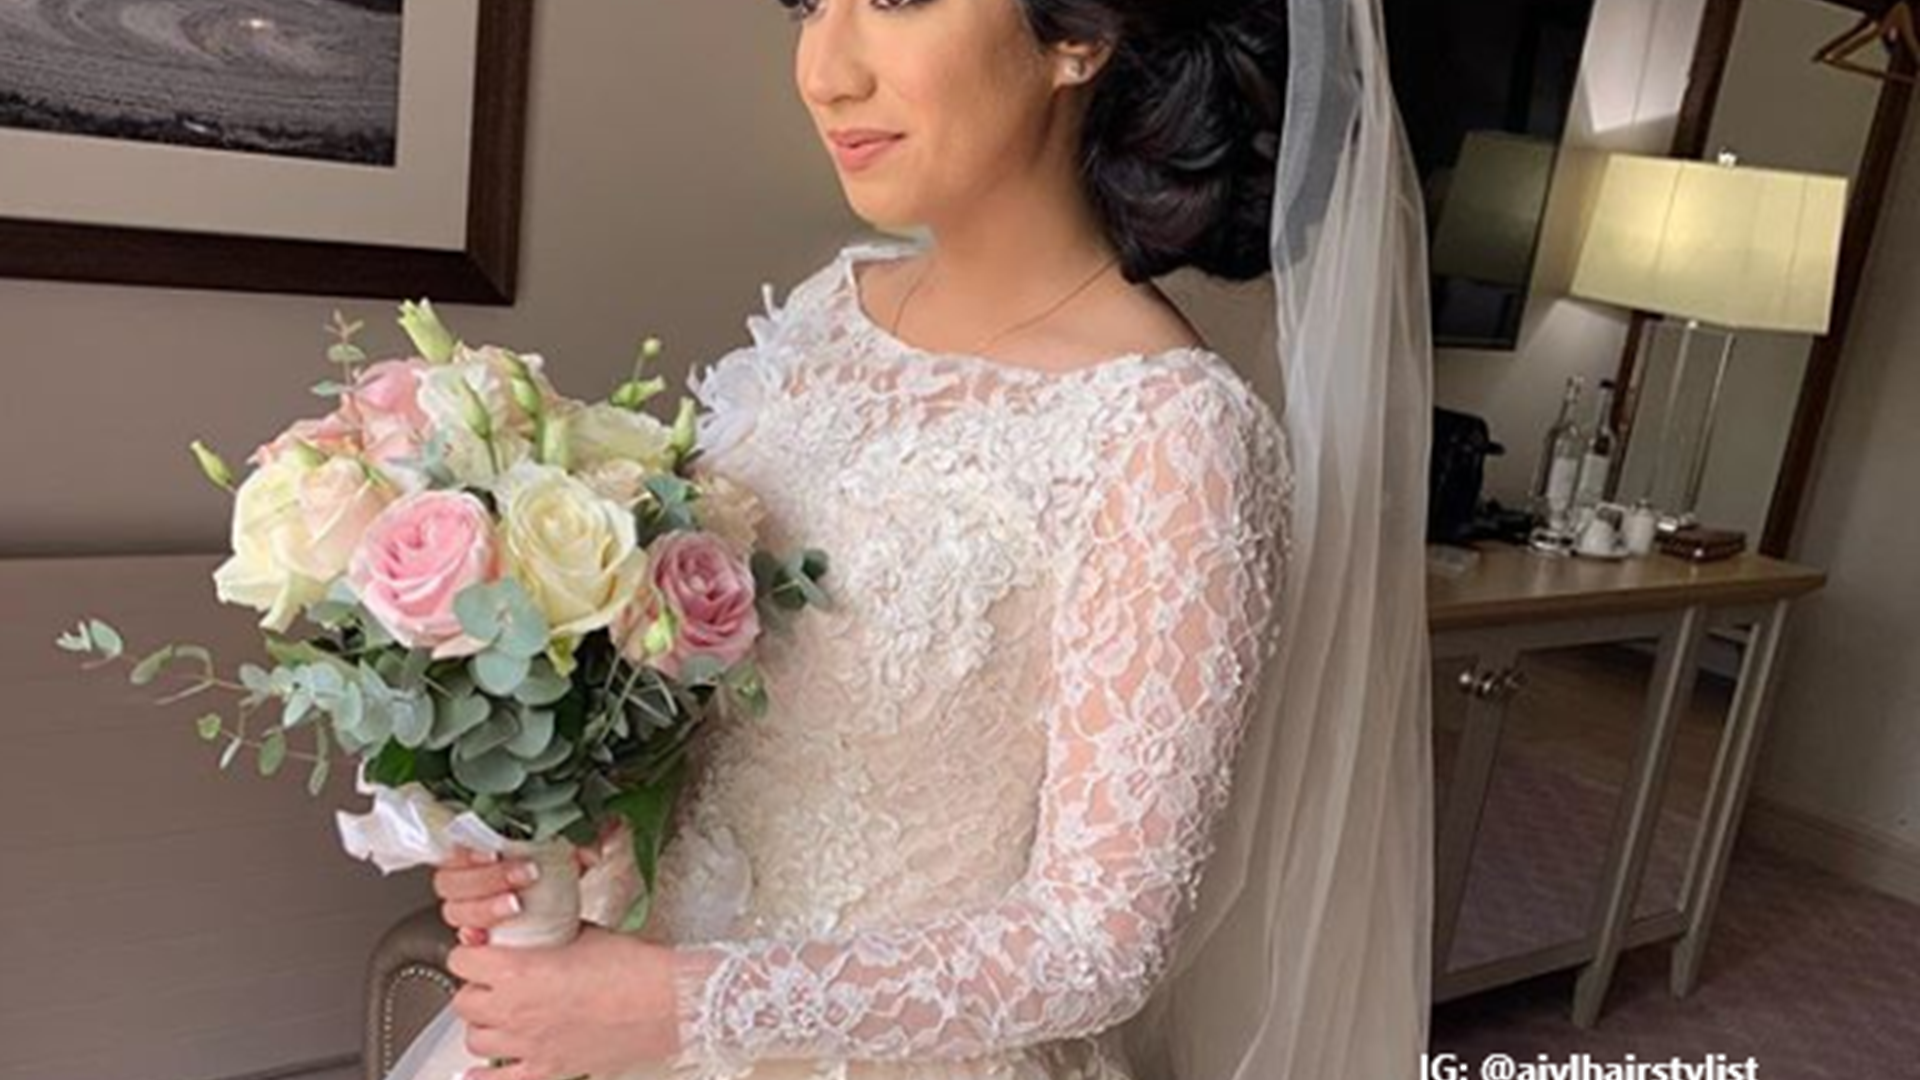 Woman in a white bridal gown and veil holding a bunch of roses on her wedding day